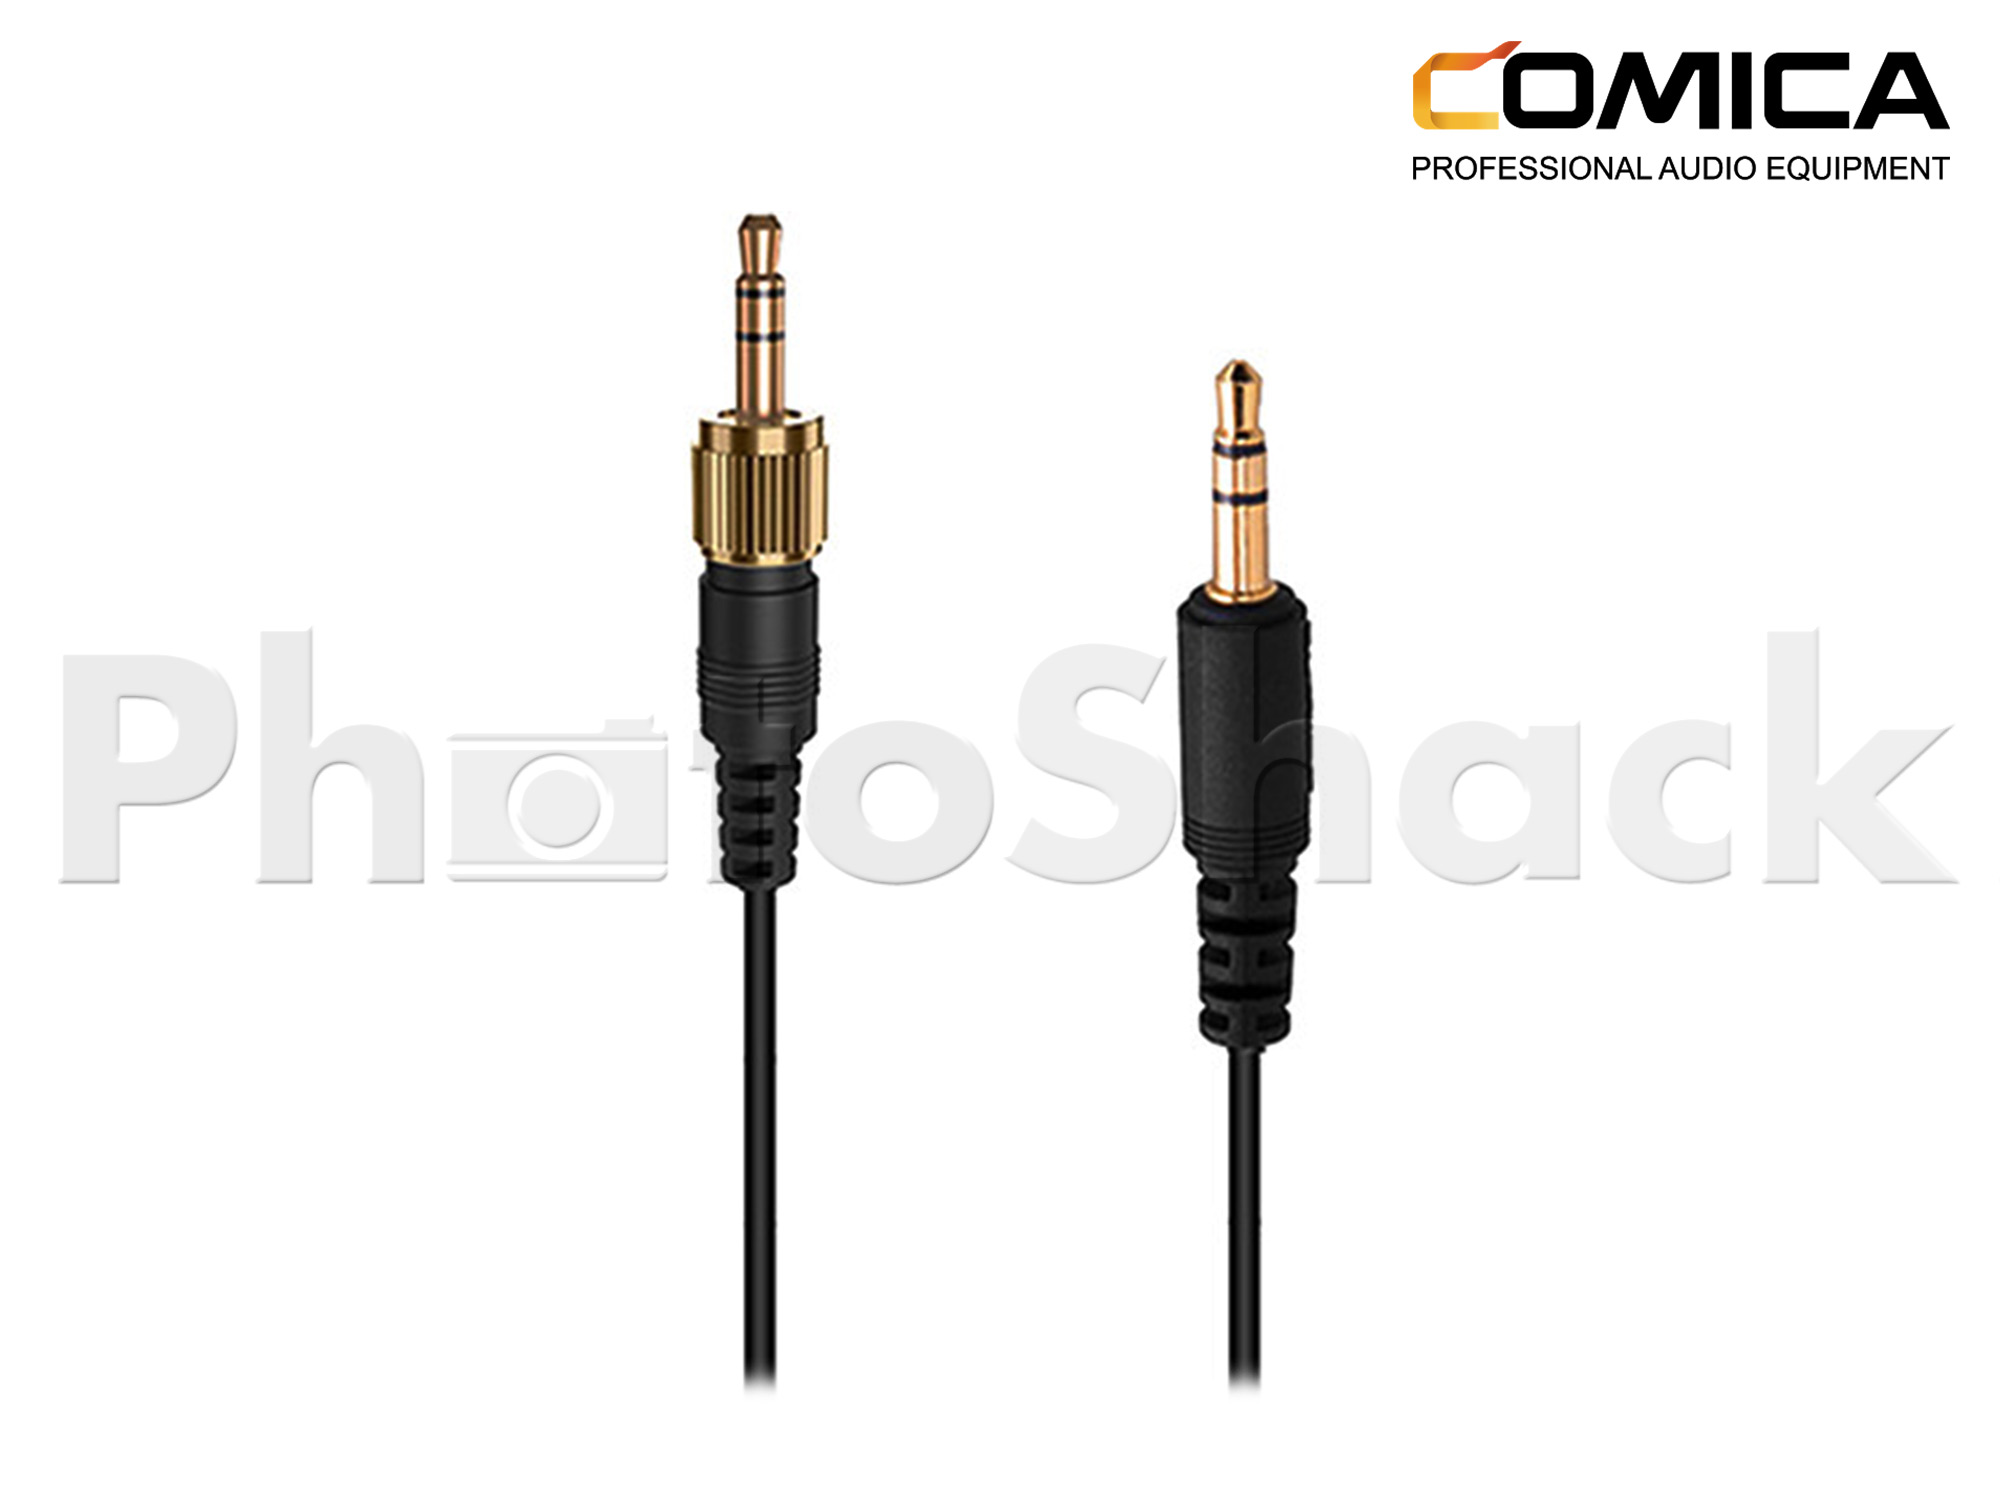 Comica 3.5mm TRS - TRS Camera Audio Cable with Locking Plate